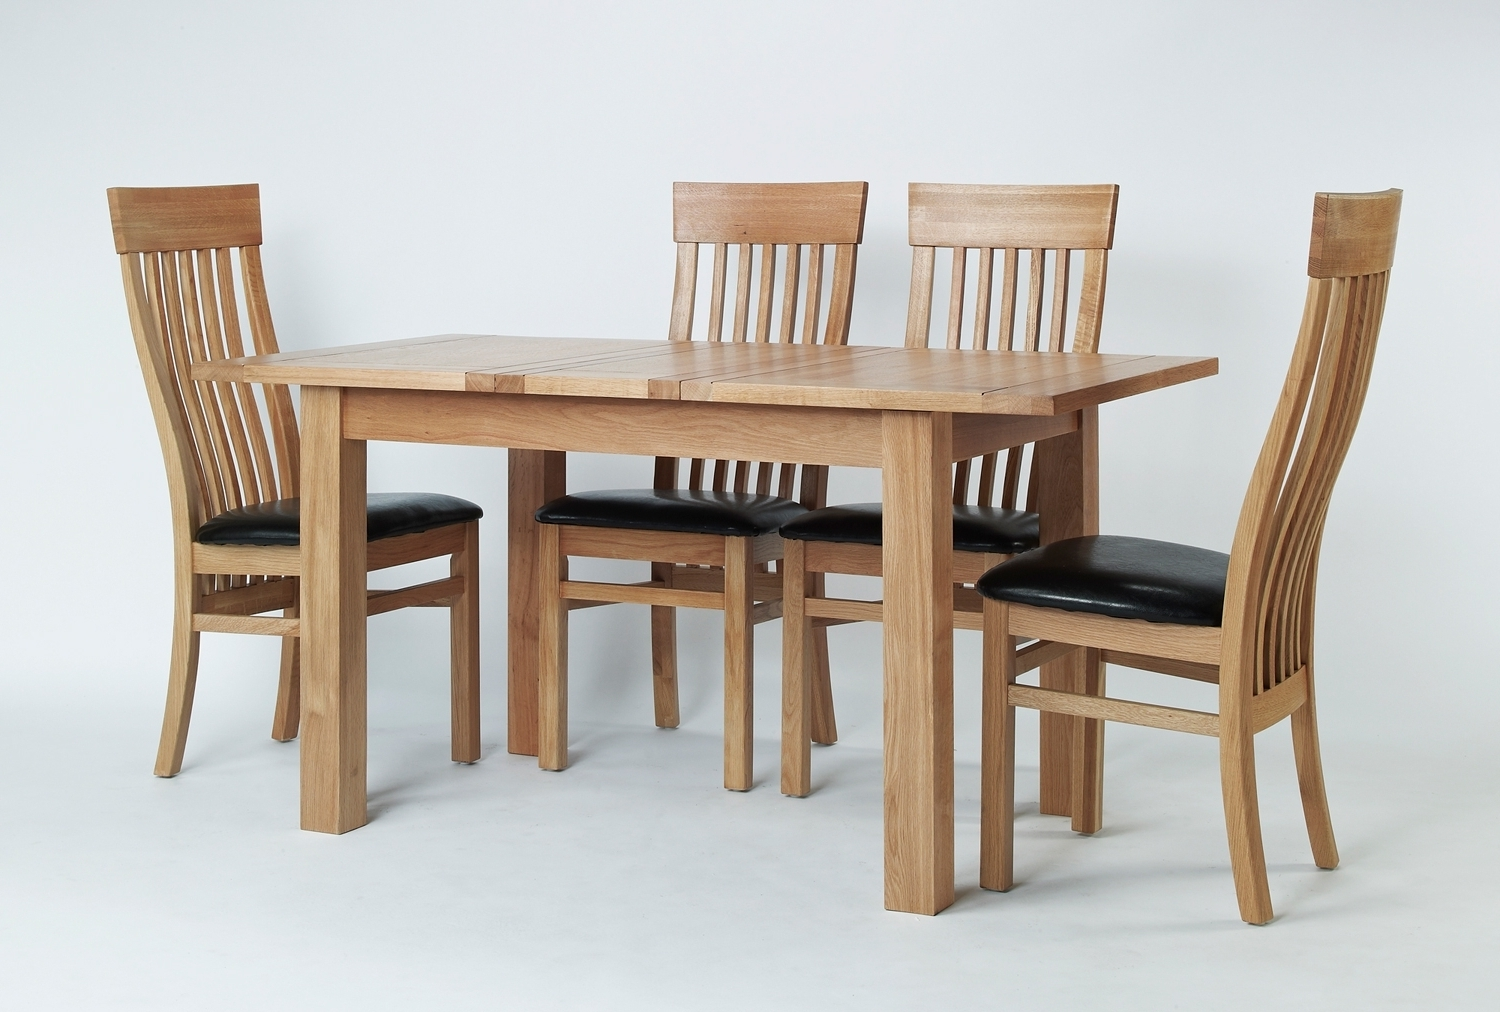 Small Extending Dining Tables And 4 Chairs Intended For Best And Newest Sherwood Oak Small Extending Dining Table 4 Or 6, Oak Extending (View 15 of 25)